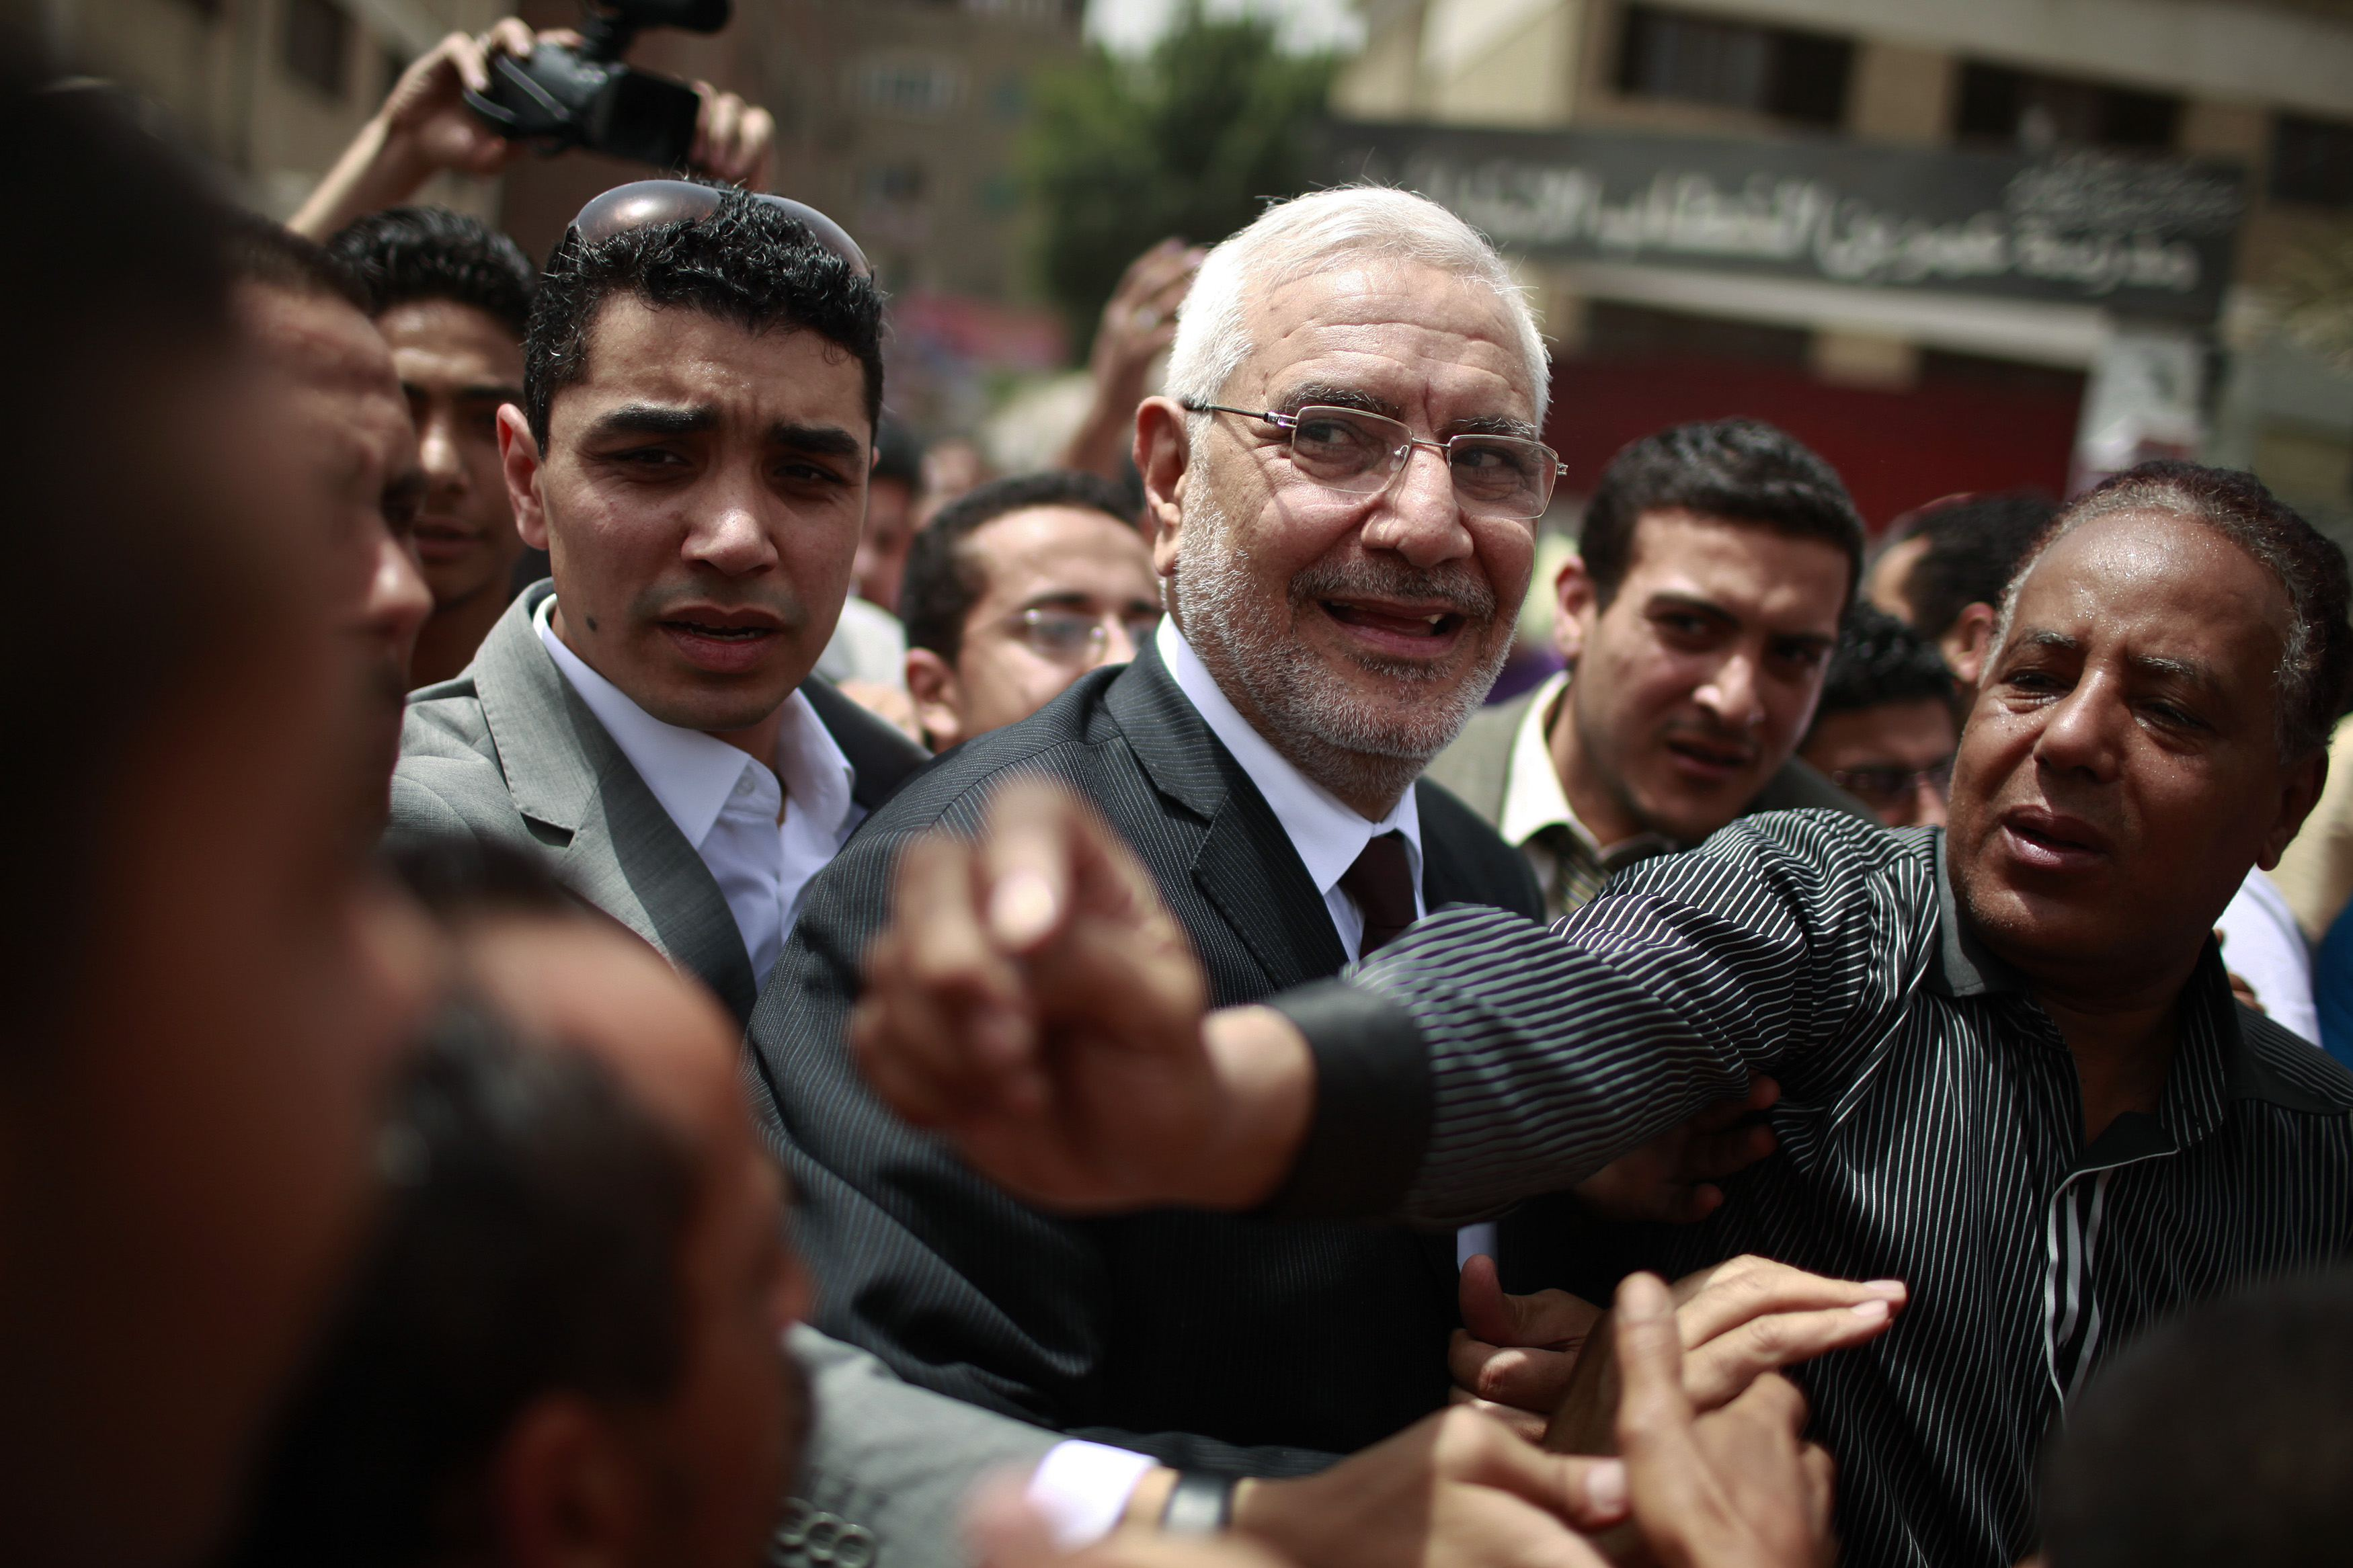 Aboul Fotouh: Civil disobedience should not ruin economy